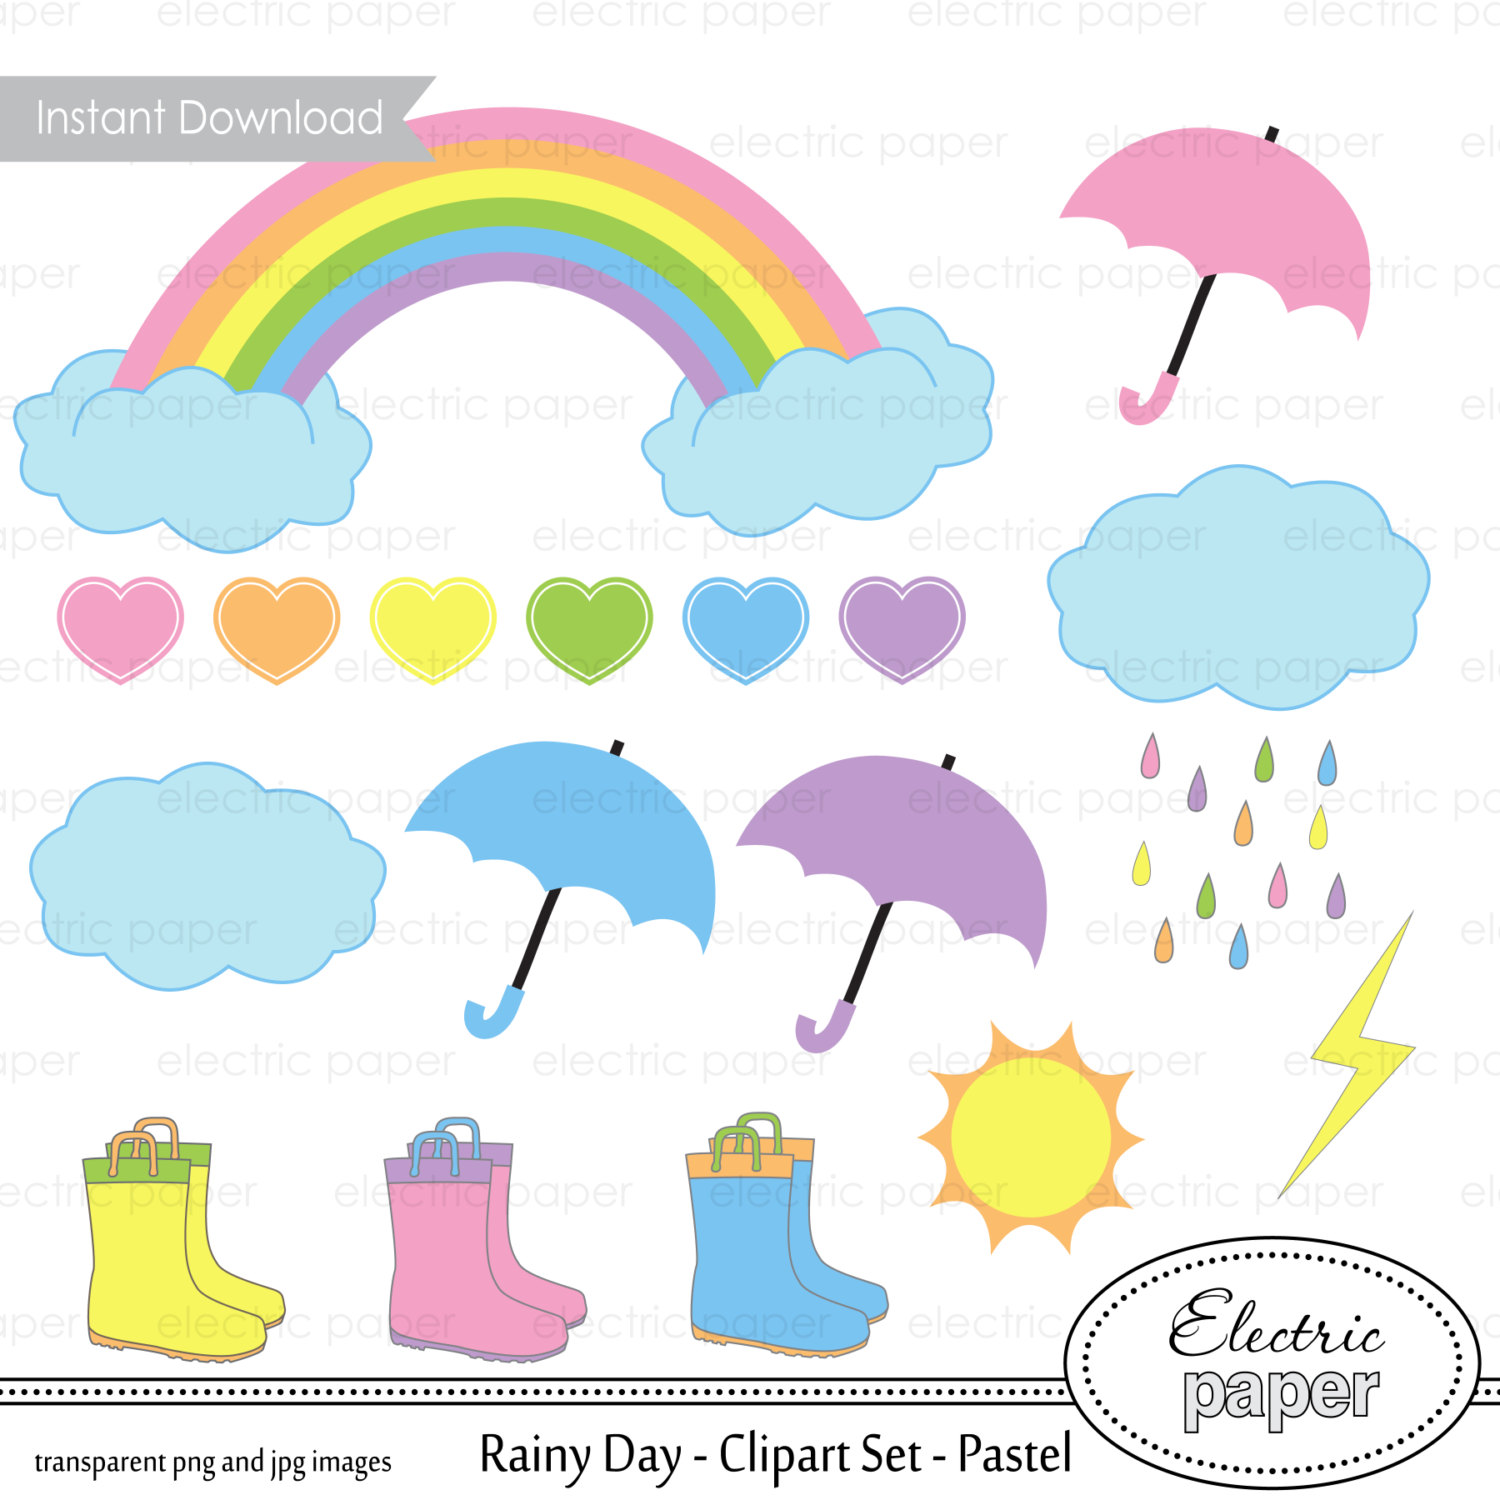 Thunderstorm clipart rainy day Clipart Pastel Clipart Download Clipart